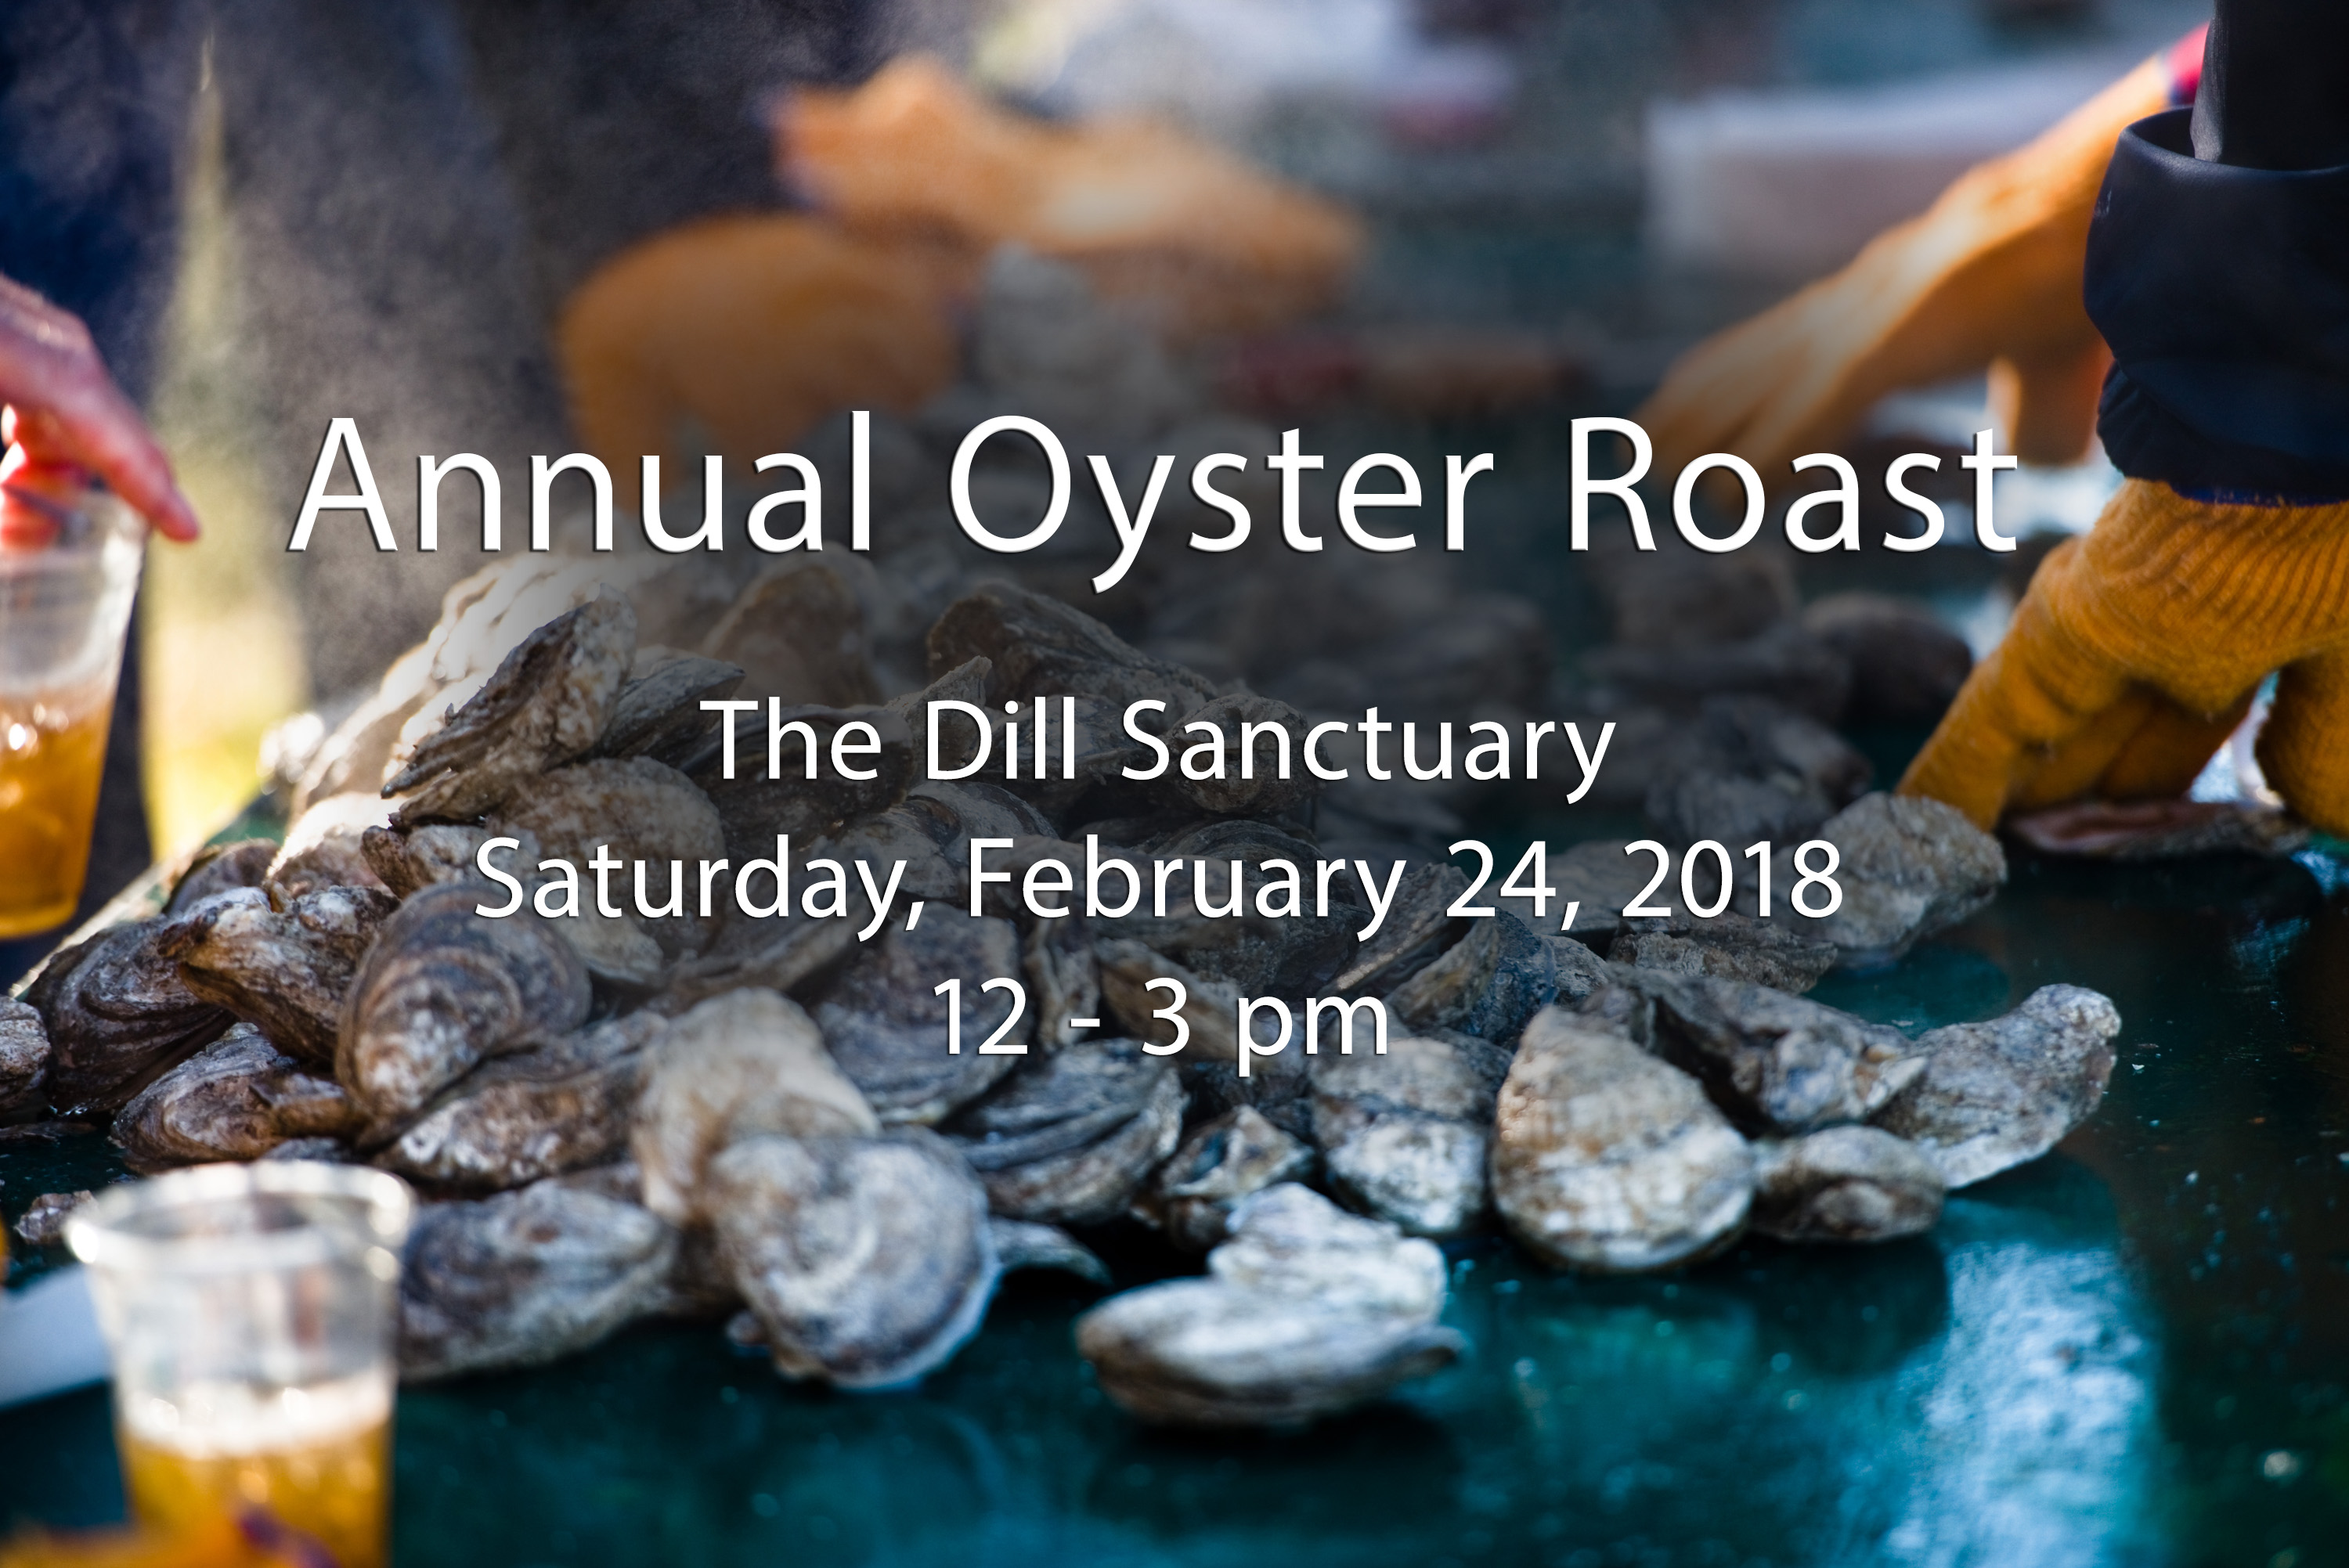 2018 Annual Oyster Roast at The Dill Sanctuary